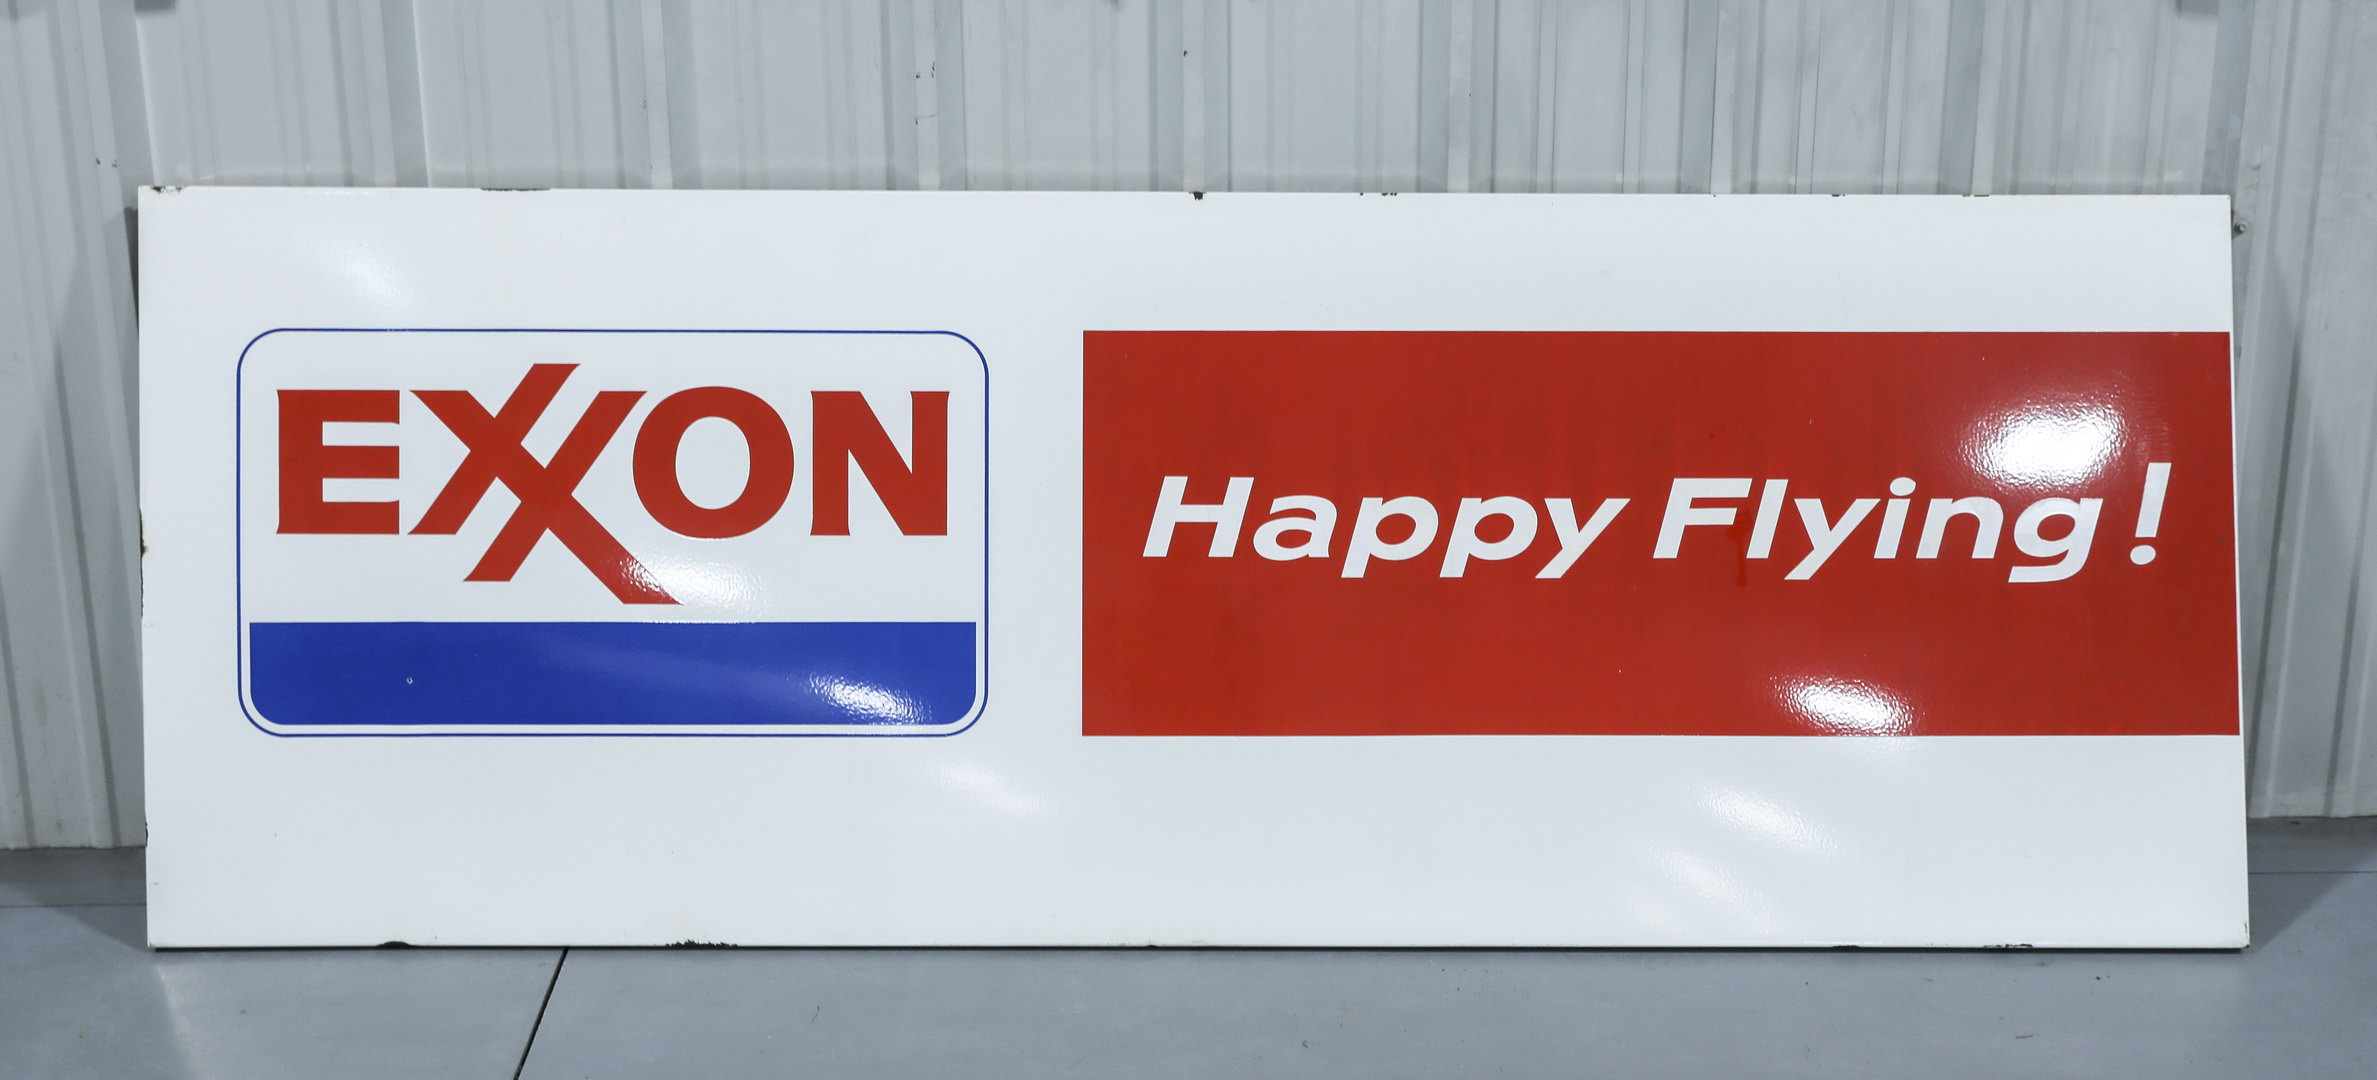 Exxon Happy Flying Porcelain Aviation Airplane Sign